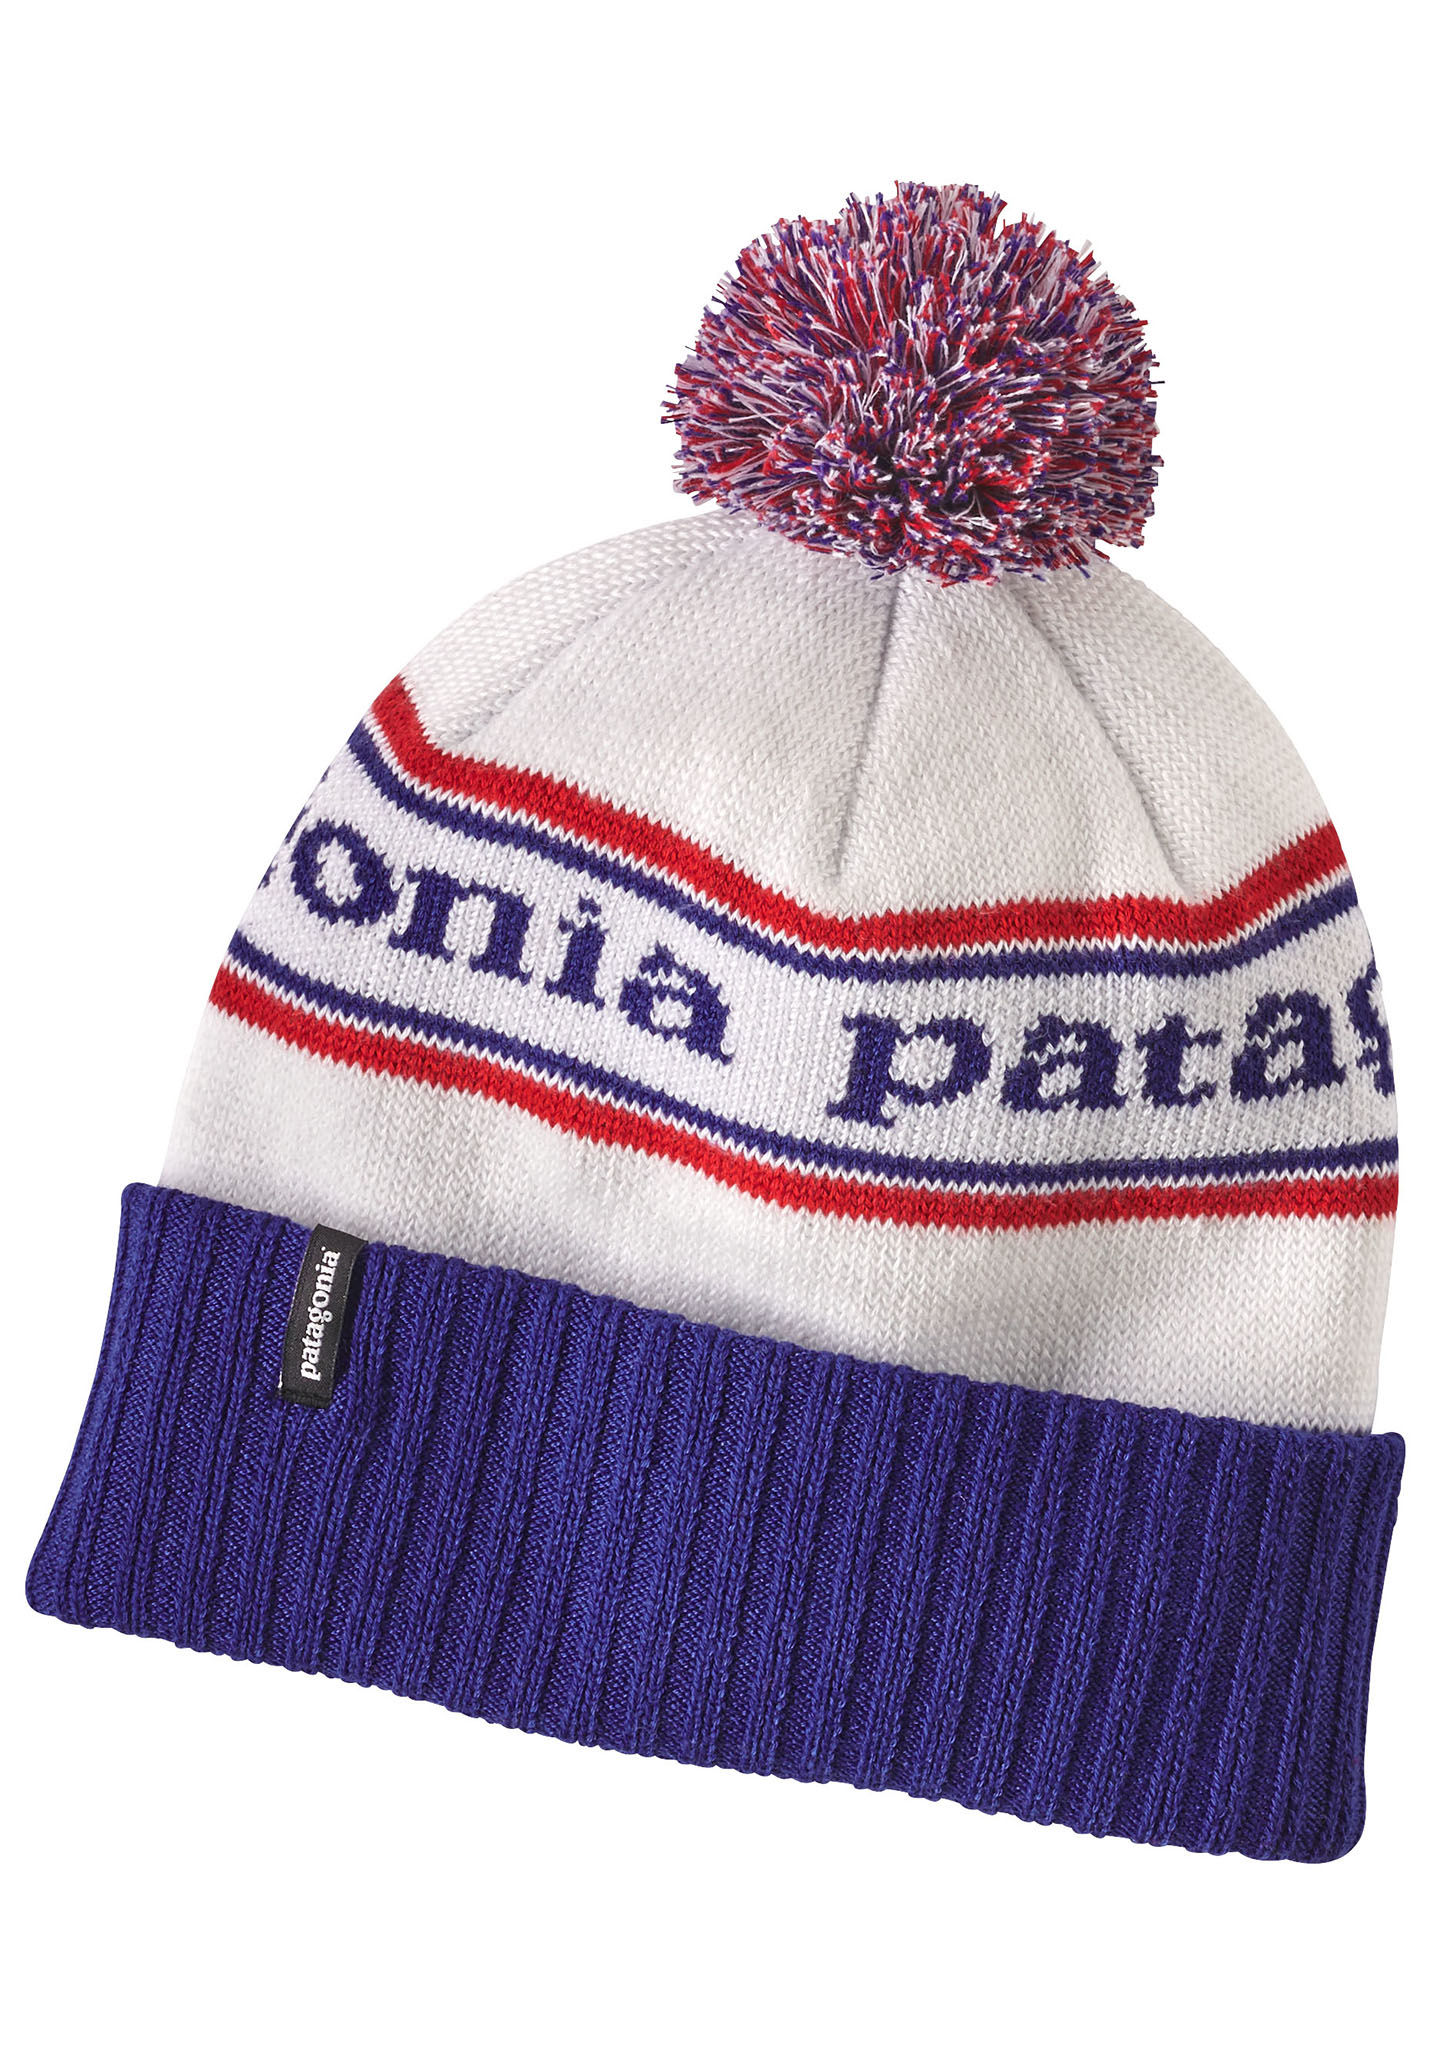 9cca4861 PATAGONIA Powder Town - Beanie - Multicolor - Planet Sports